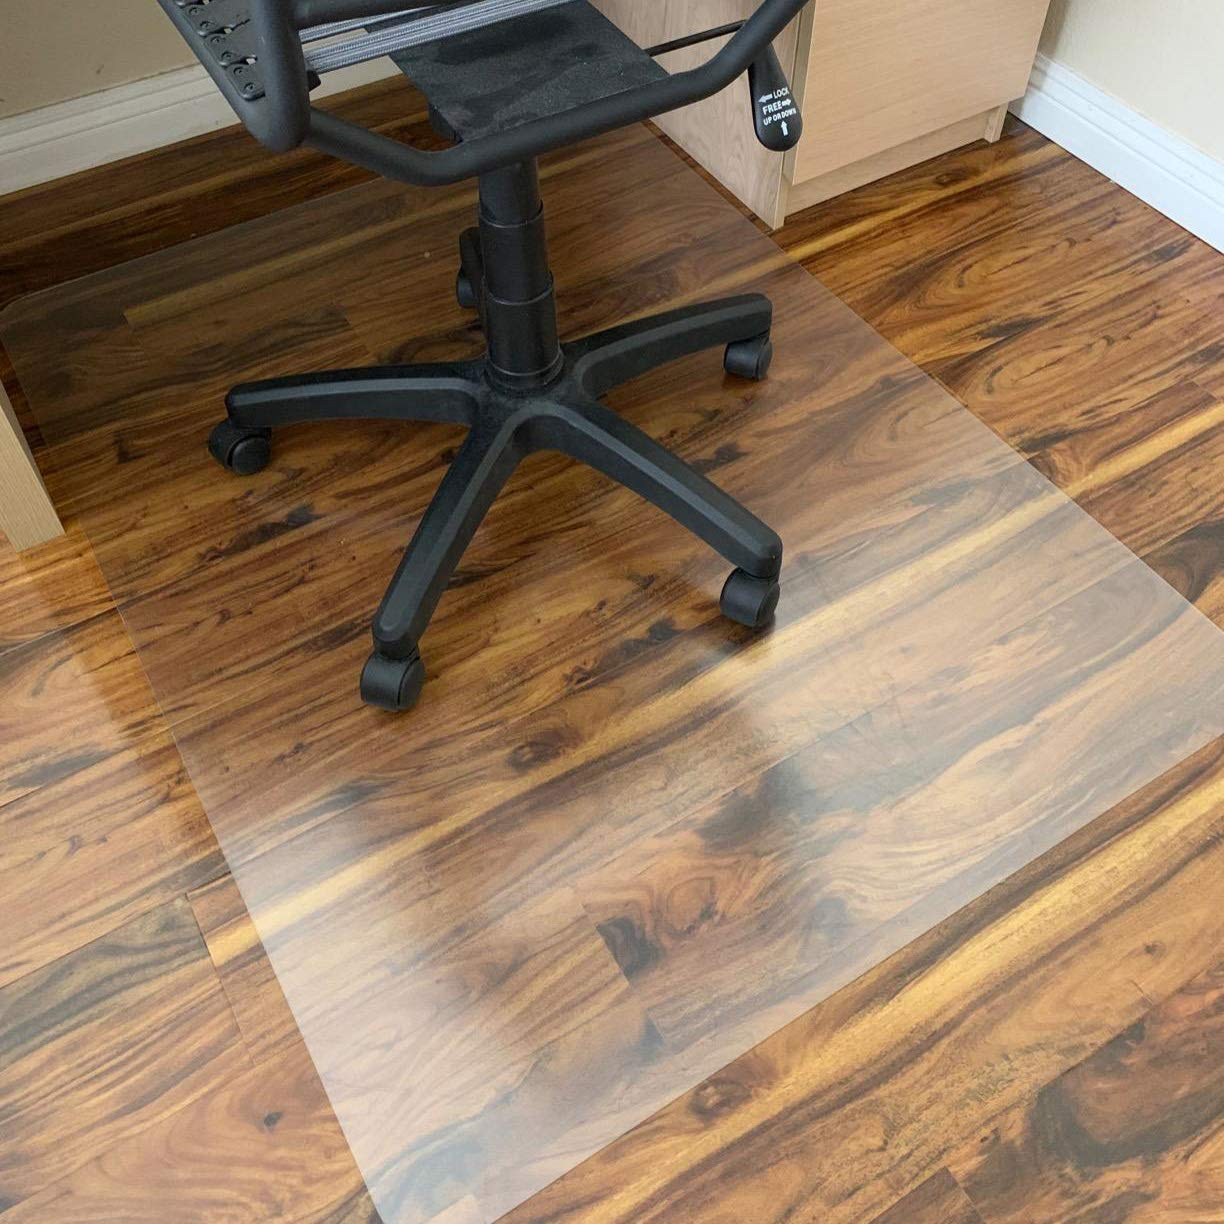 Polycarbonate Office Chair Mat for Hardwood Floor,Floor Mat for Office Chair(Rolling Chairs)-Desk Mat&Office Mat for Hardwood Floor-Sturdy&Durable,Immediately Flat When Taken Out of Box: 36''x48'' 2 Pcs by Rose Home Fashion